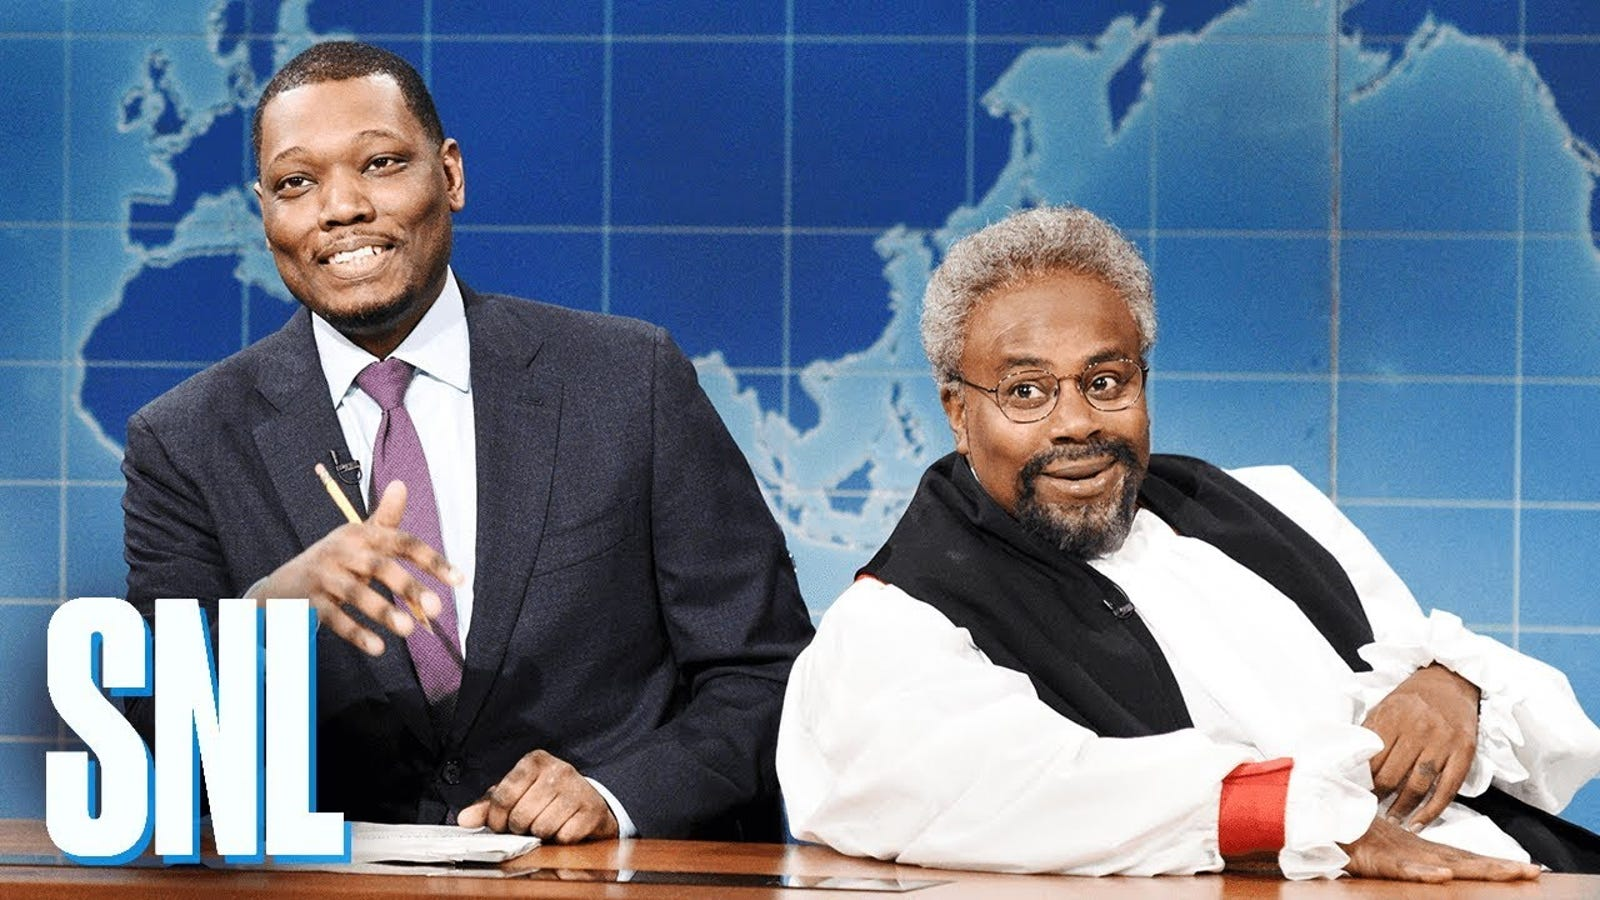 Watch: SNL Does a Spot on Send-Upof Bishop Curry From the Royal Wedding